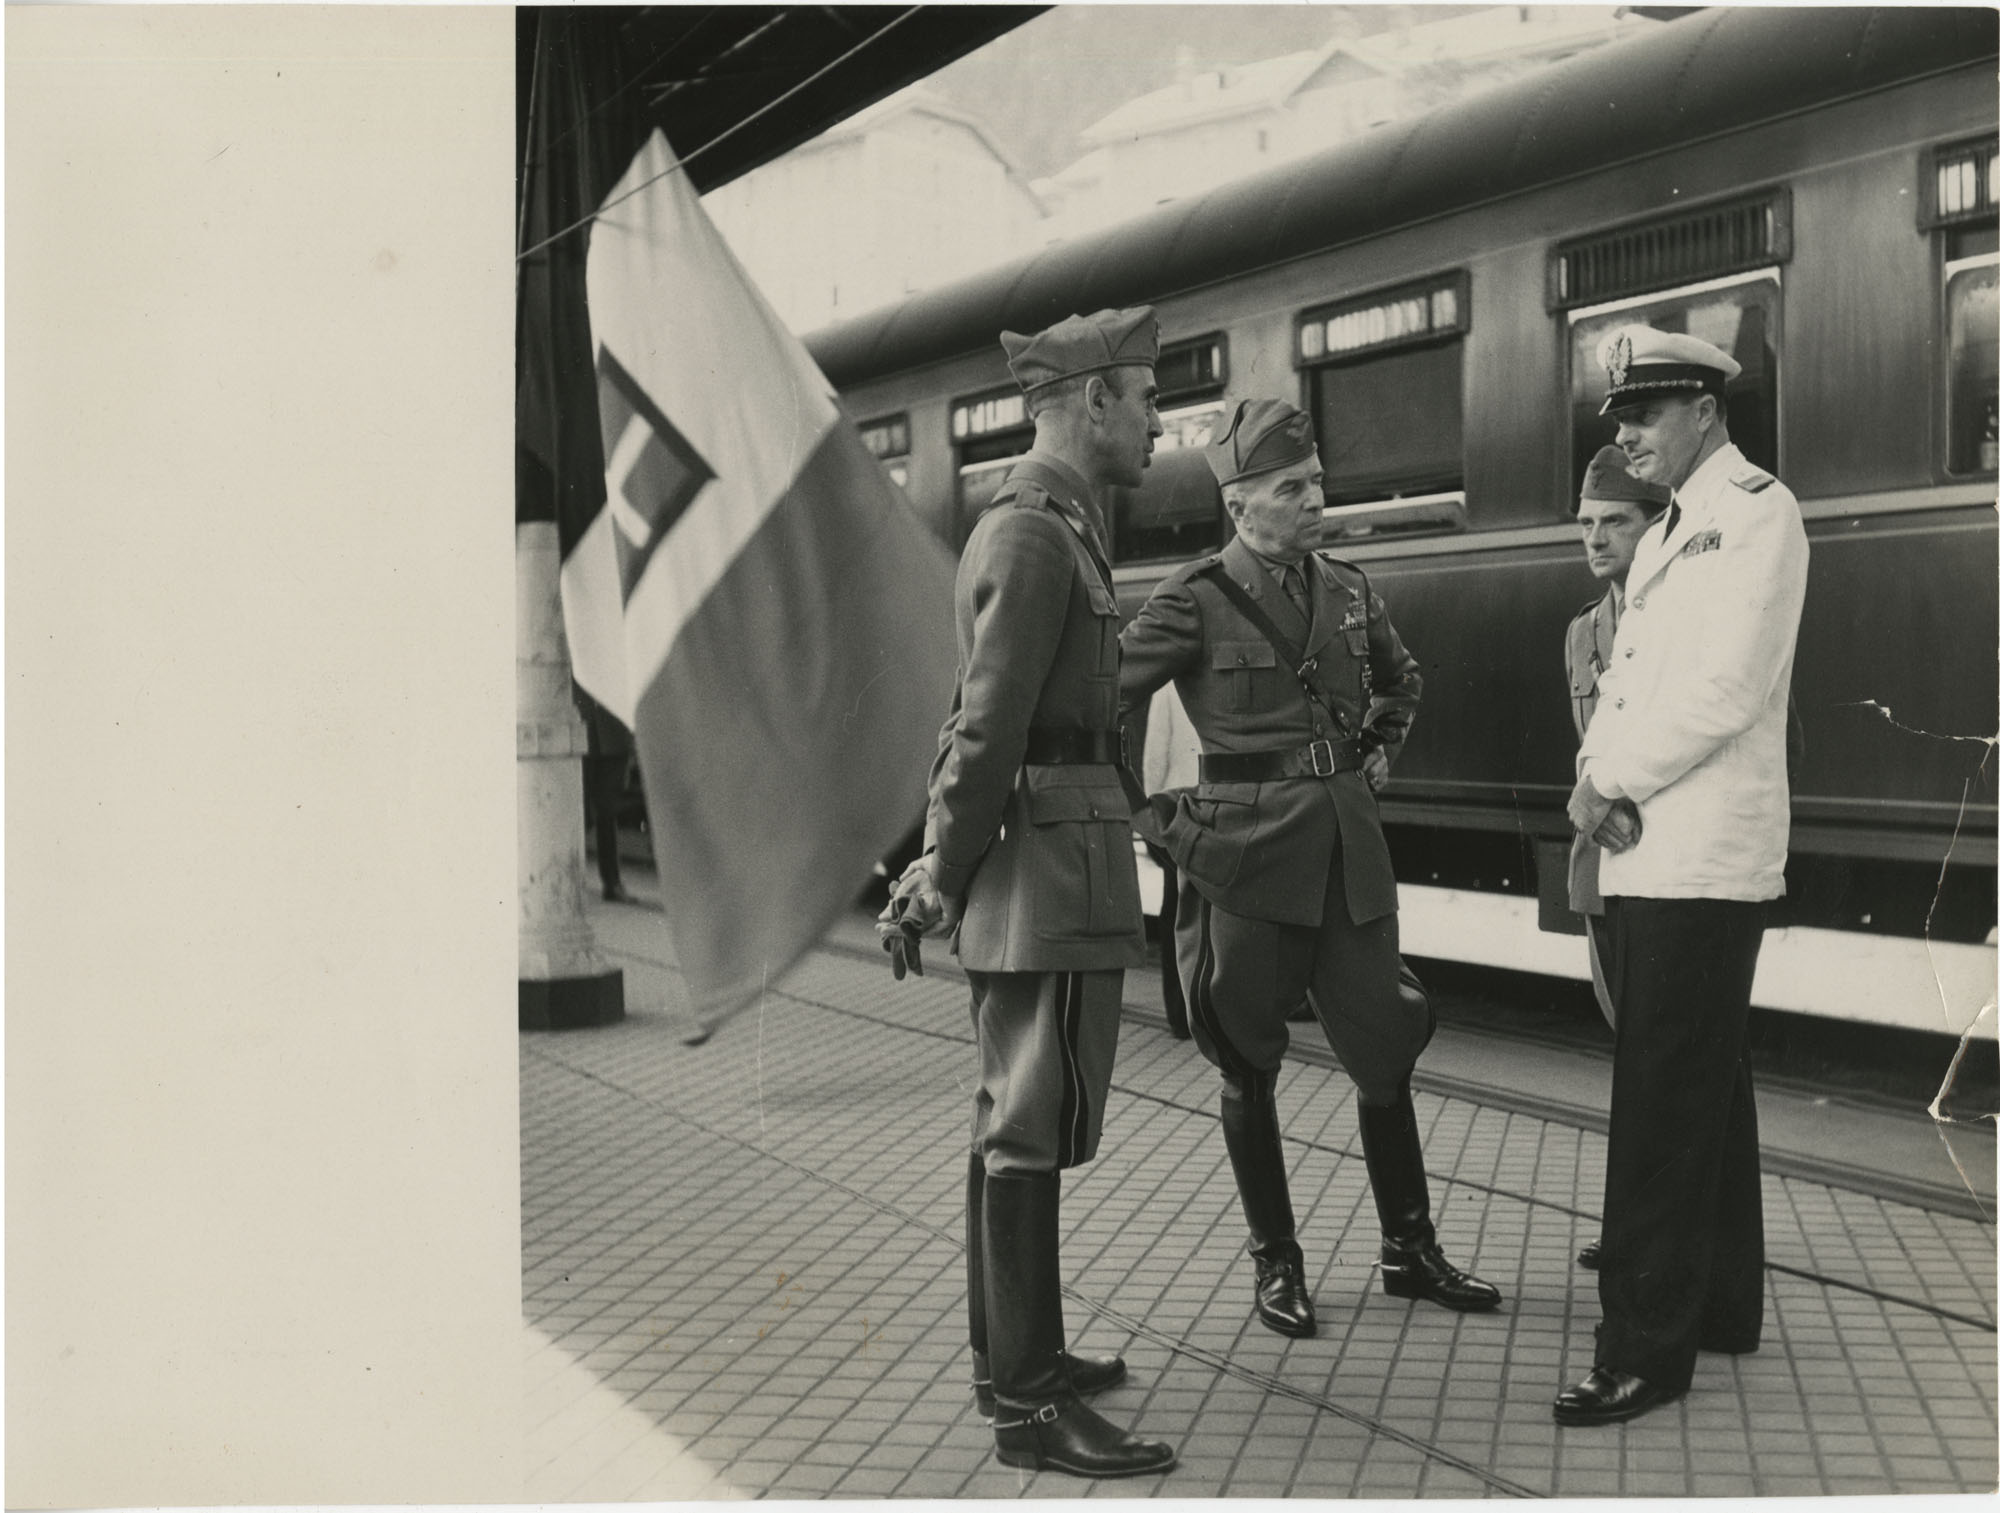 Mario Pansa and military officials at a train station, Photograph 1